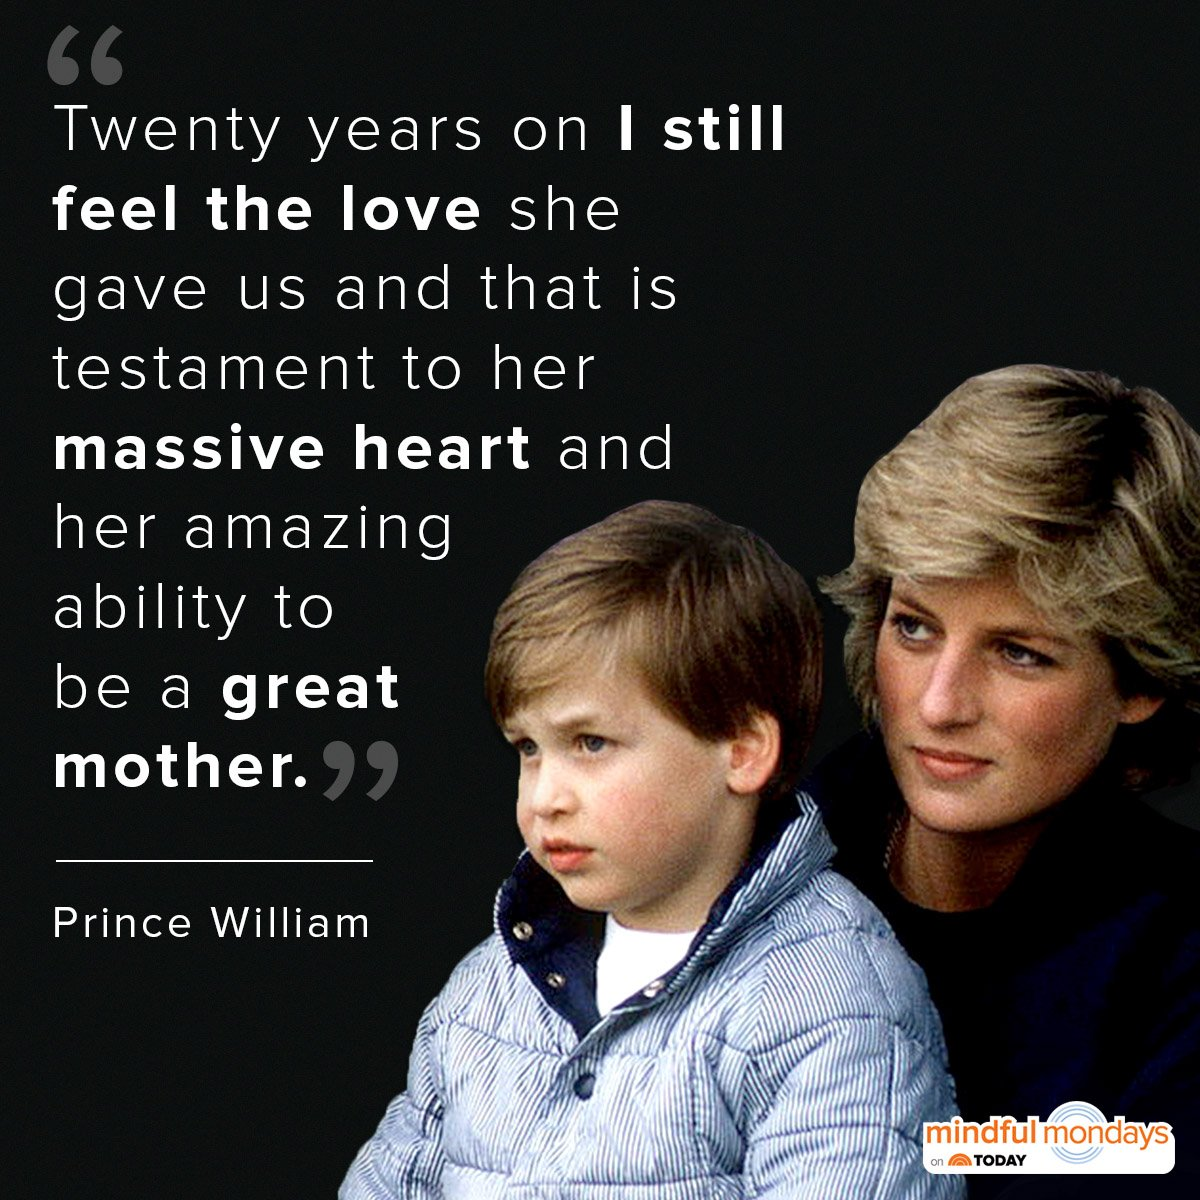 Nearly 20 years after Princess Diana's death, Prince William reveals what made his mother so special.